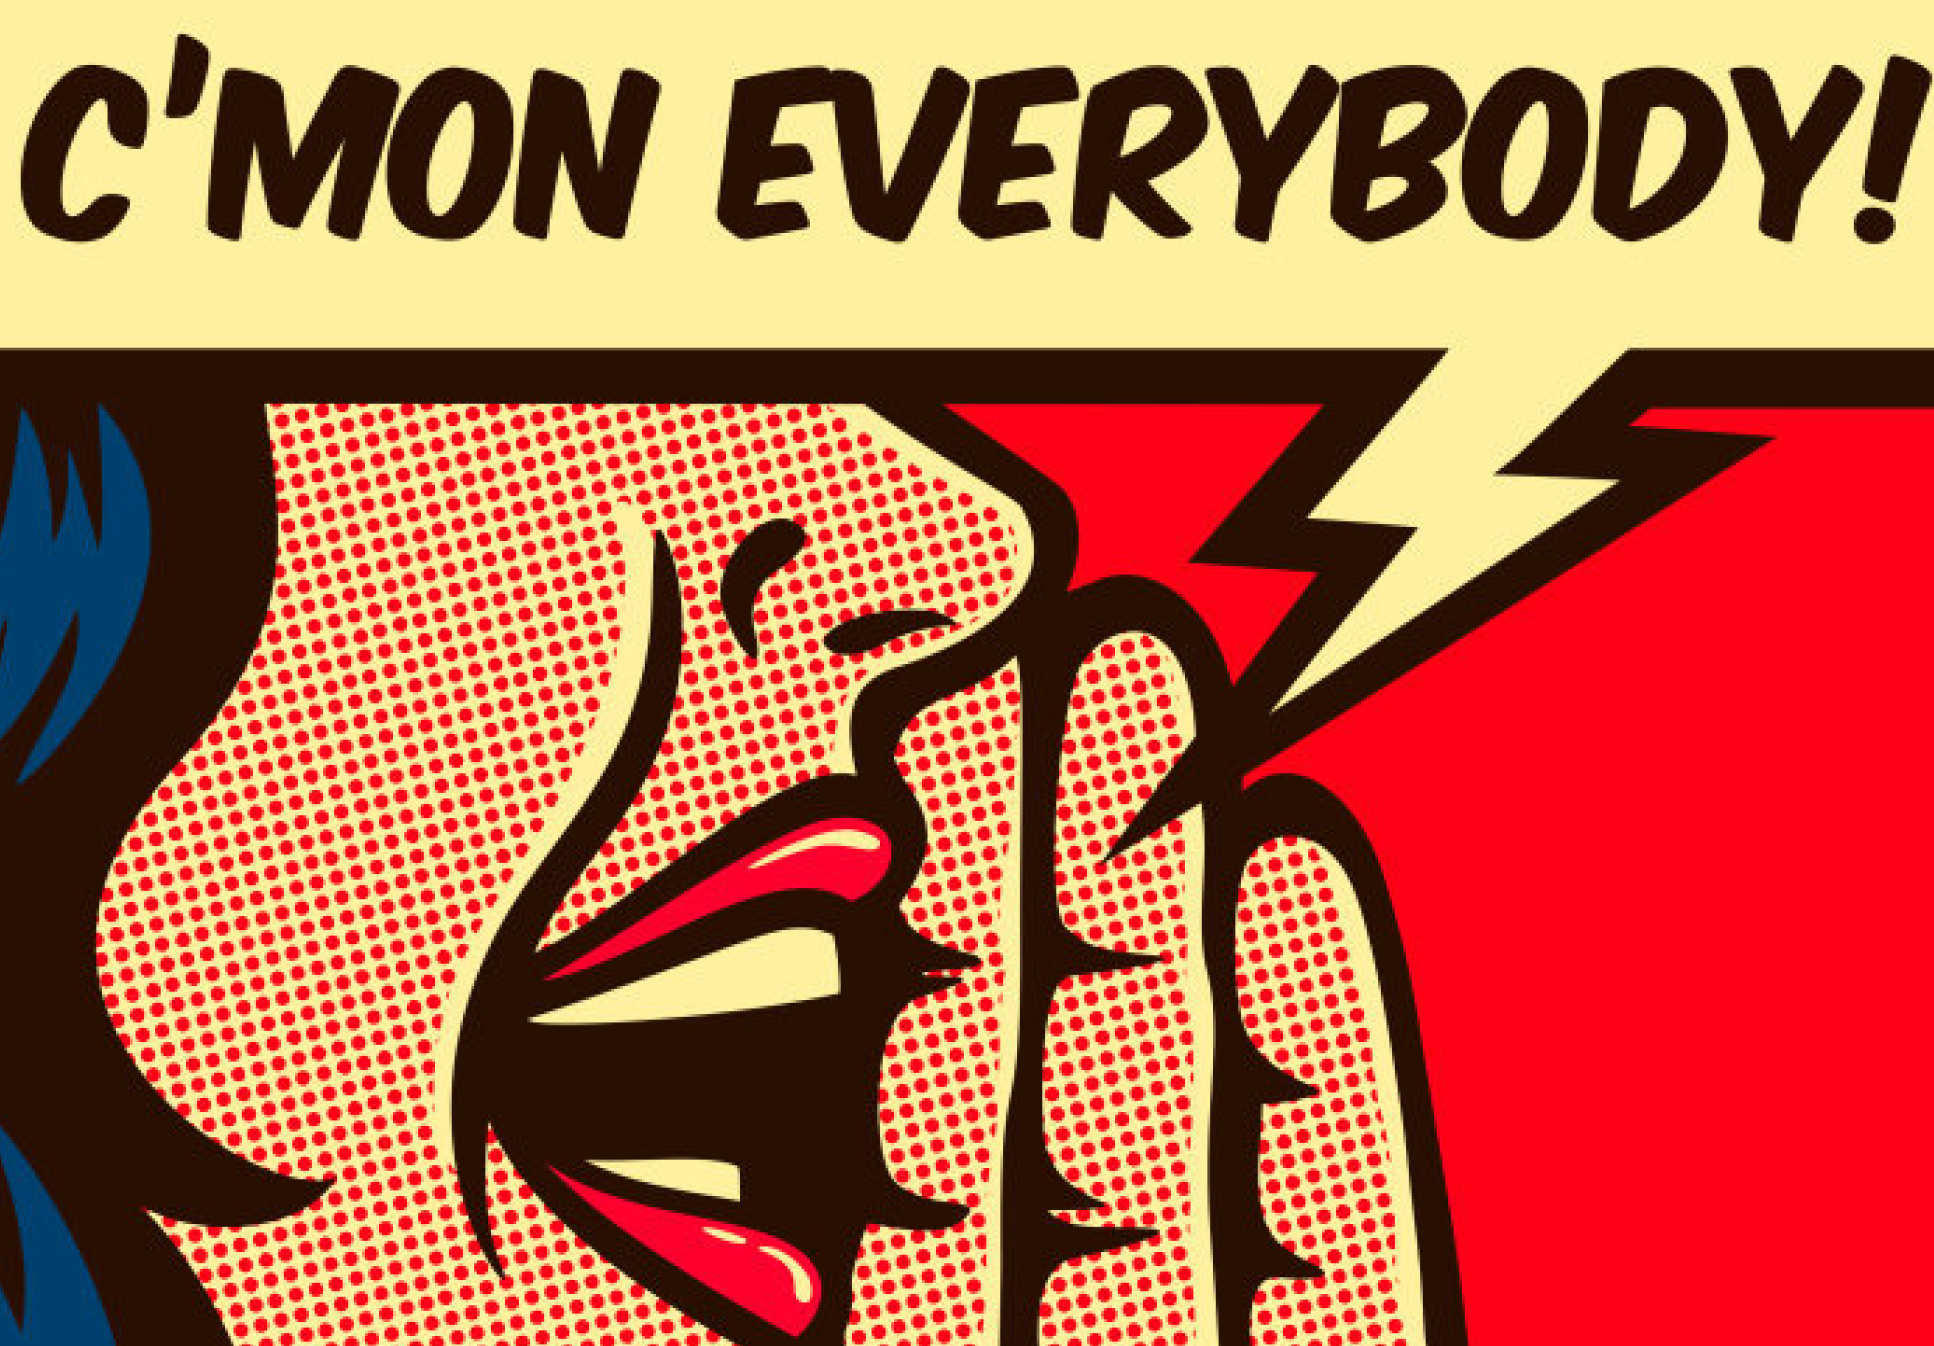 Popart piece of woman shouting 'C'mon everybody!'